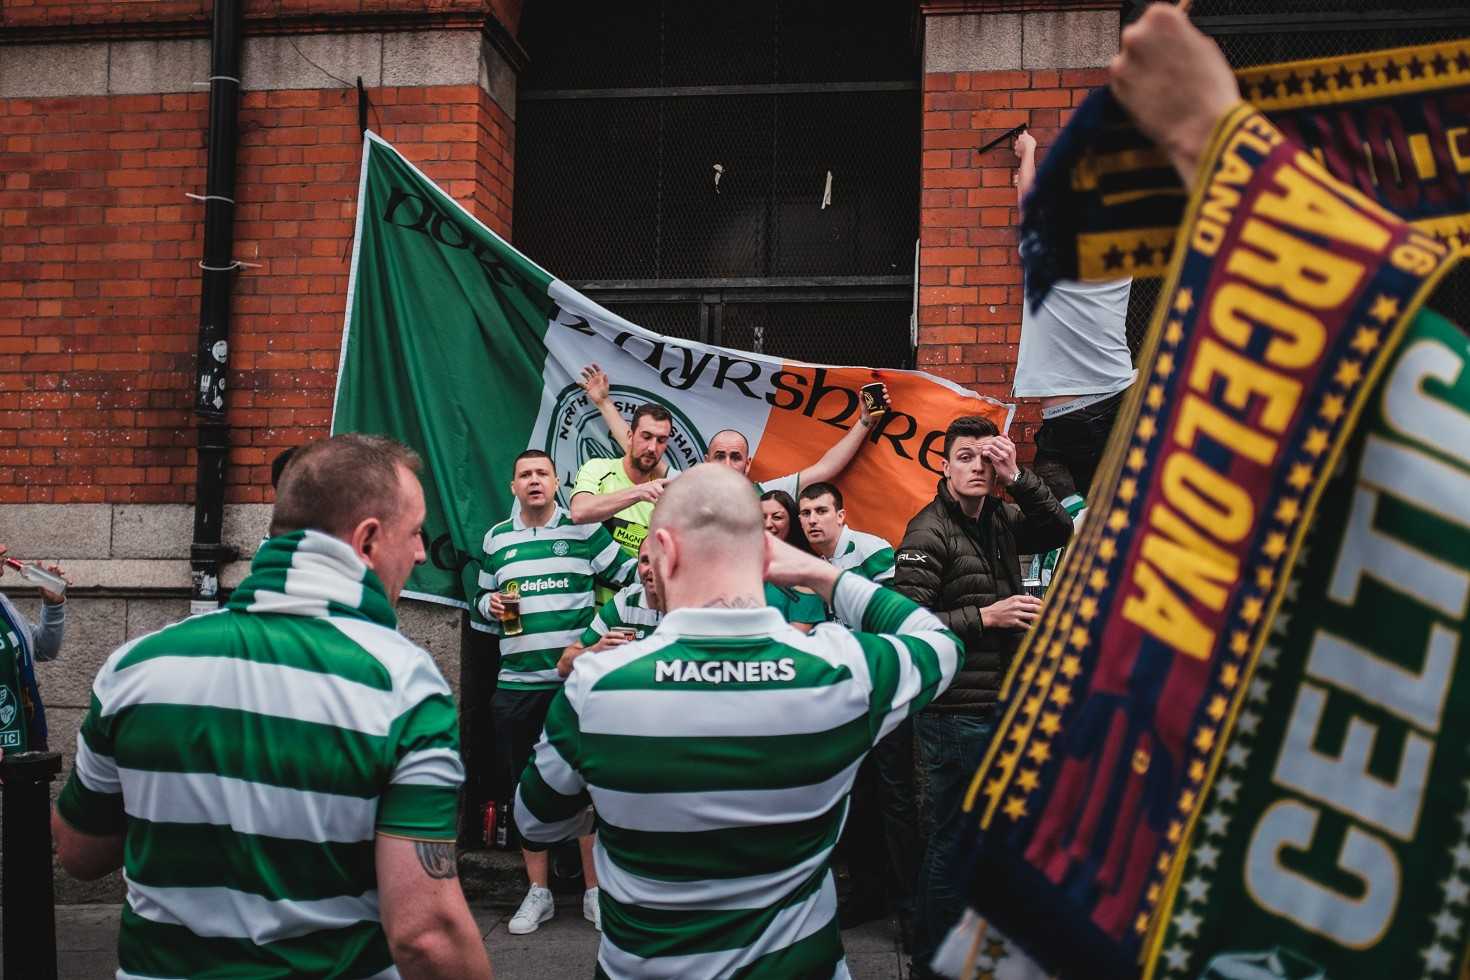 Celtic-Barca-Barcelona-Dublin-Temple-Bar-Aviva-Ireland-Fans (21 von 68)